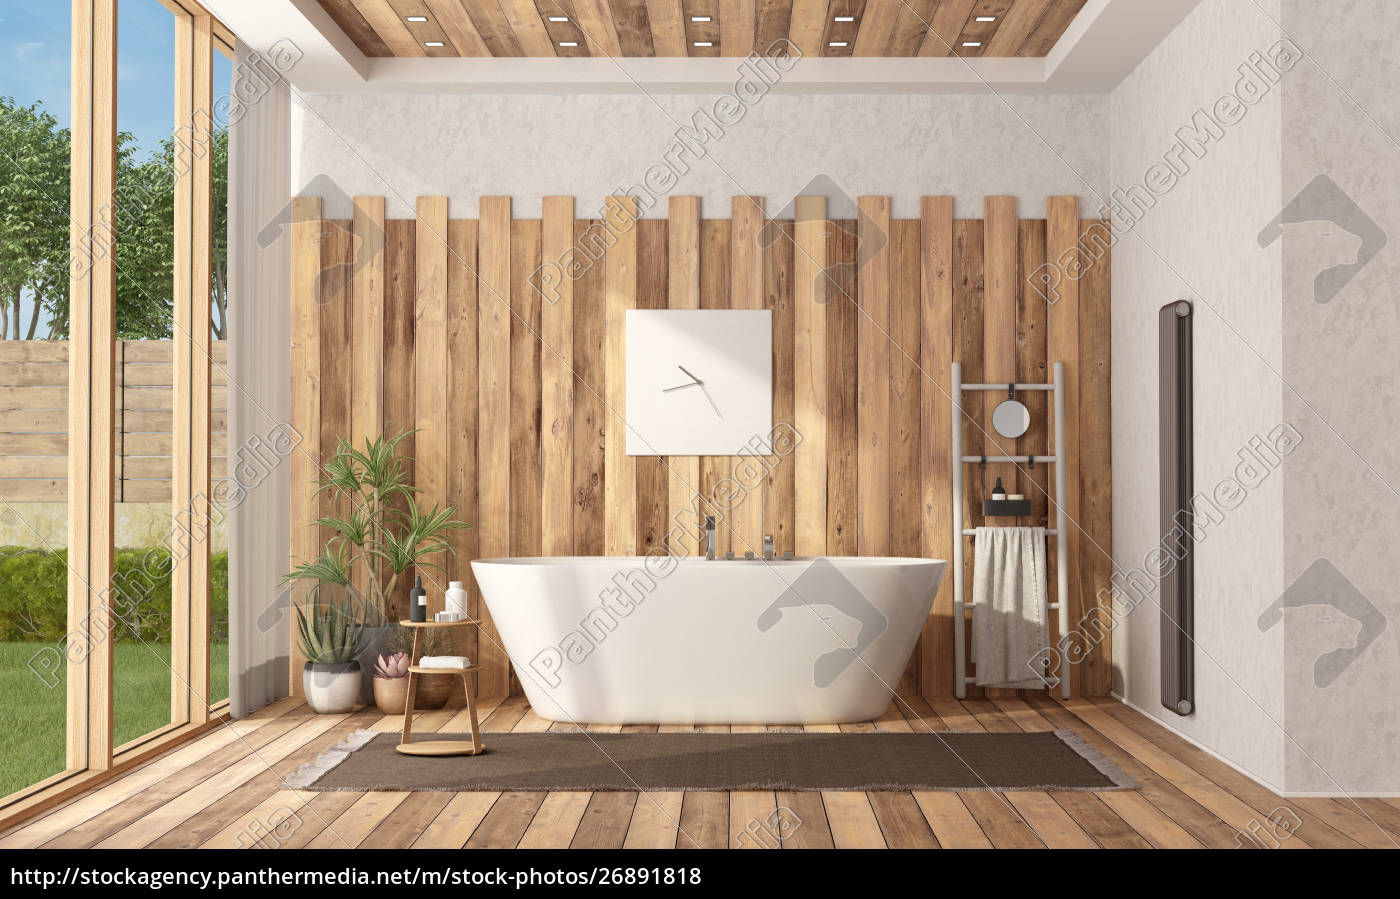 Picture of: Modern Wooden Bathroom With Bathtub Stock Image 26891818 Panthermedia Stock Agency